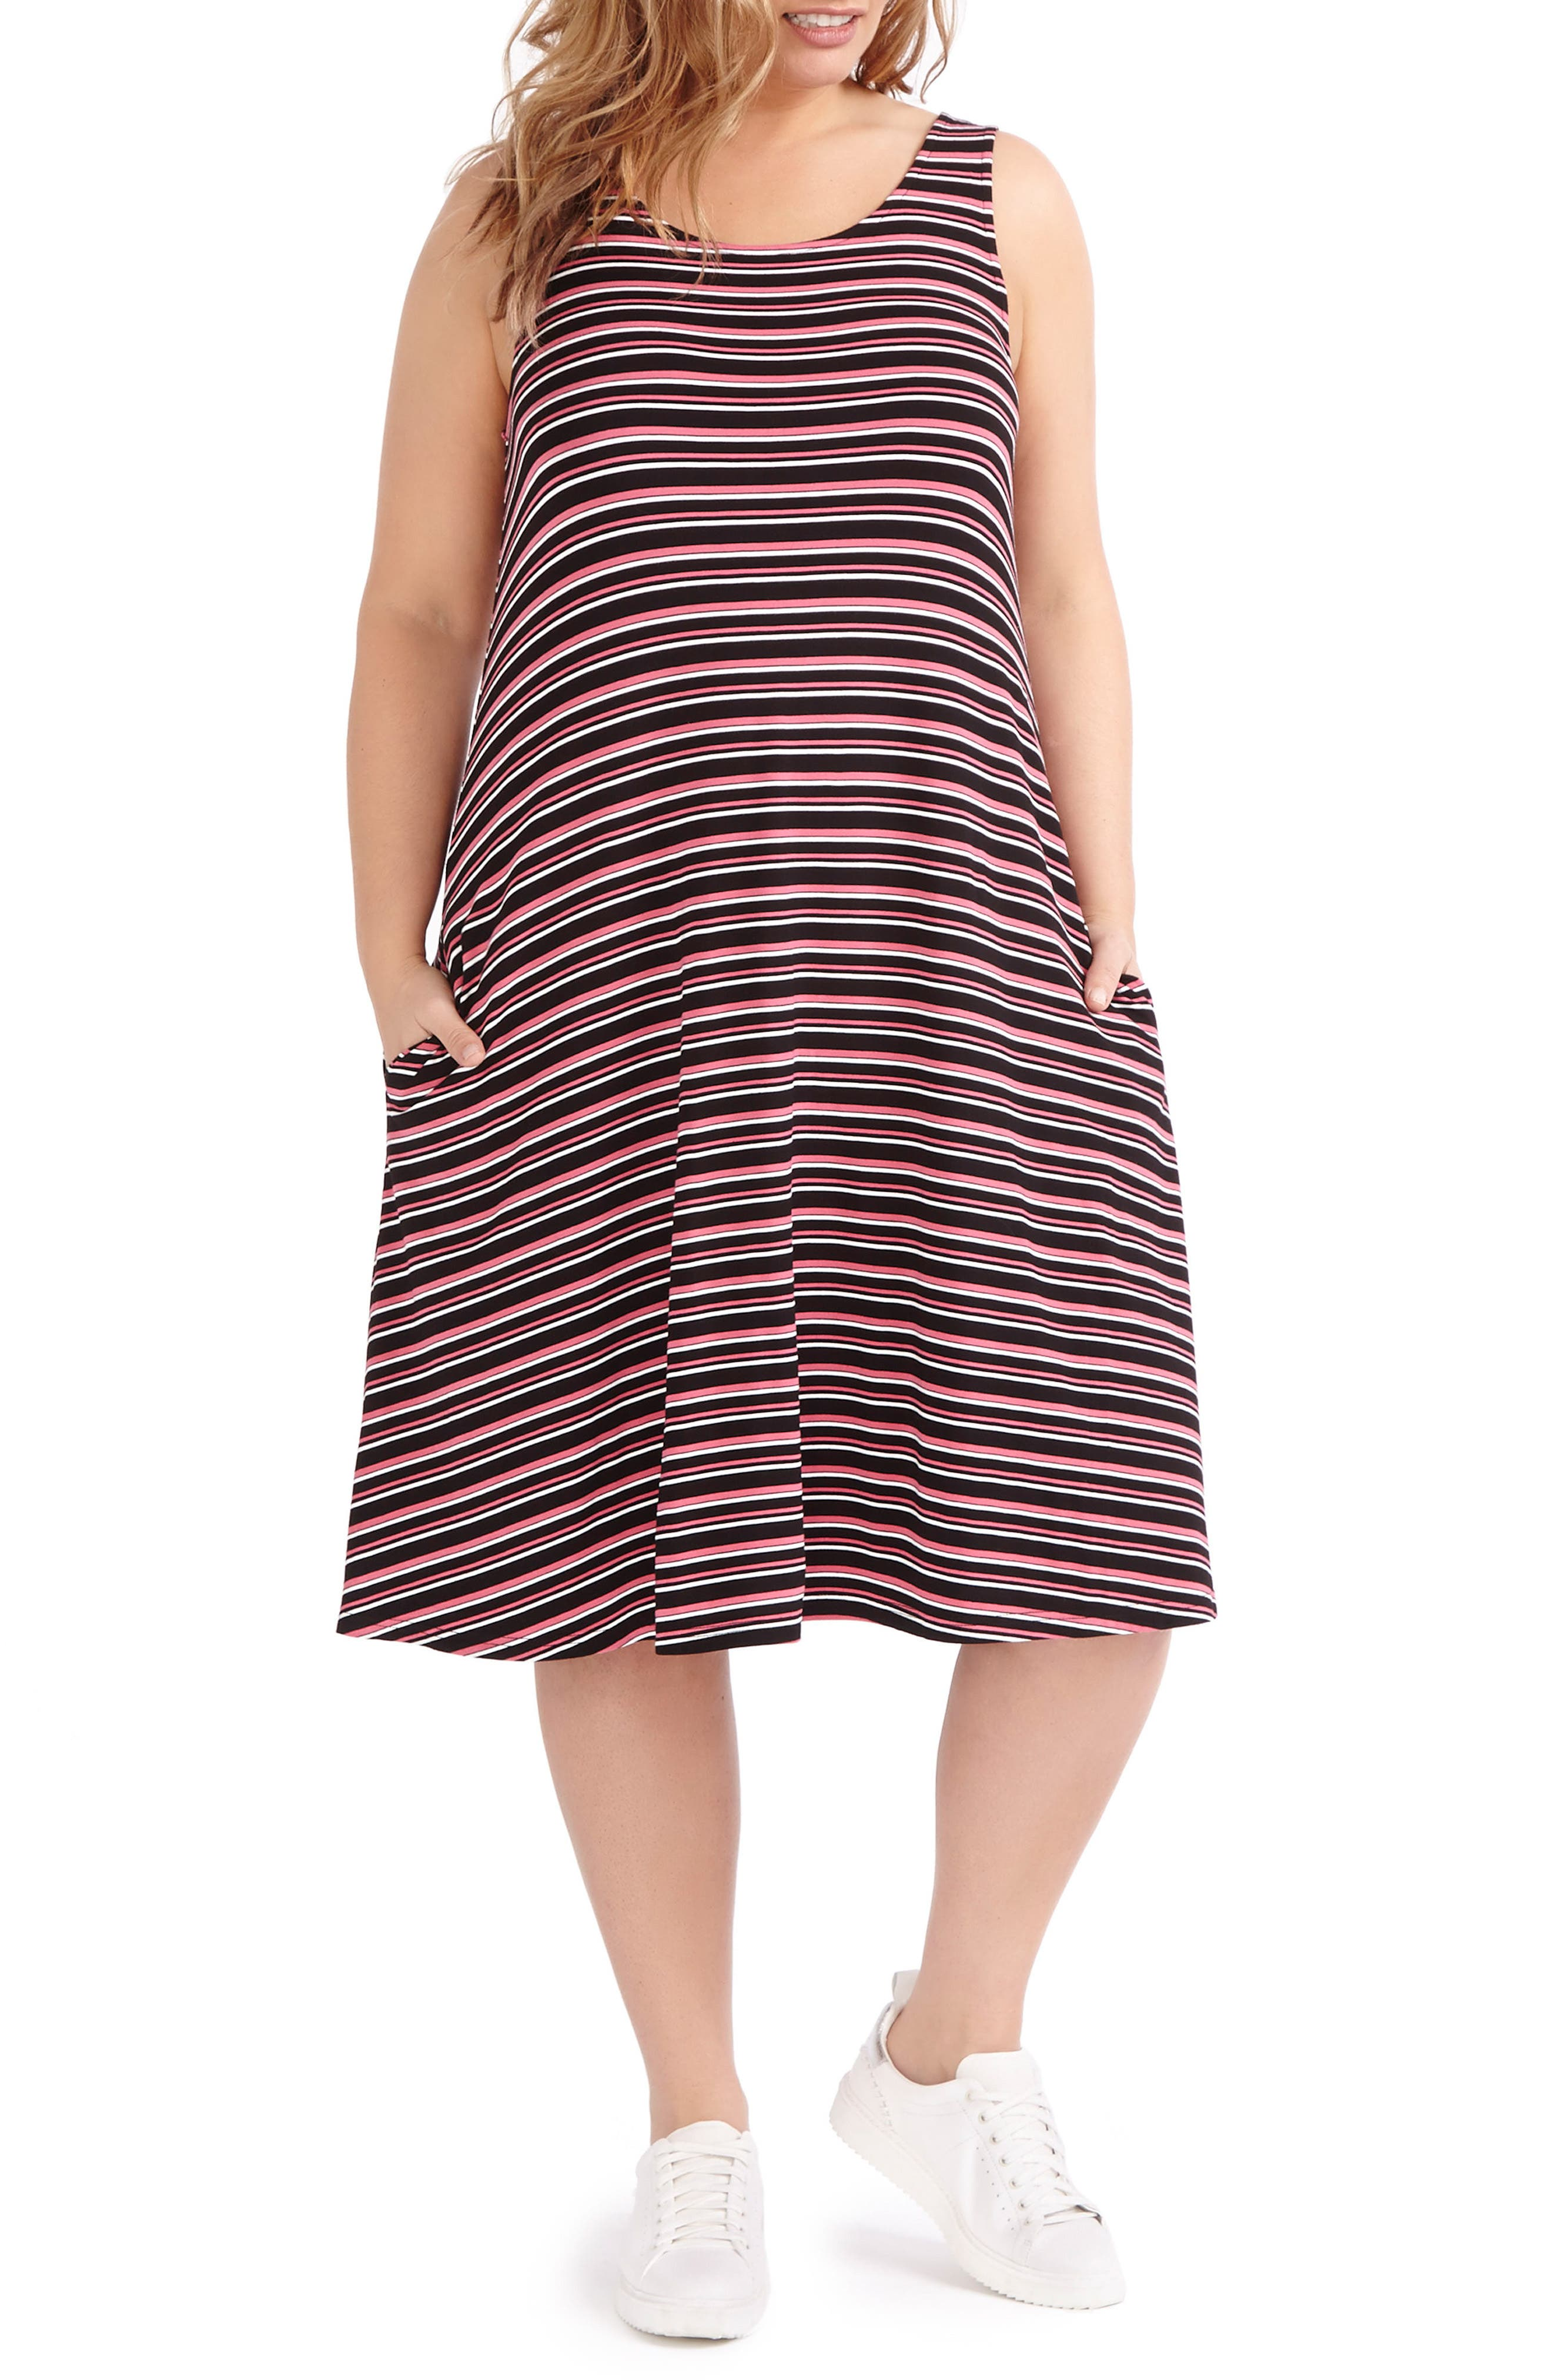 ADDITION ELLE LOVE AND LEGEND Stripe Swing Dress (Plus Size)